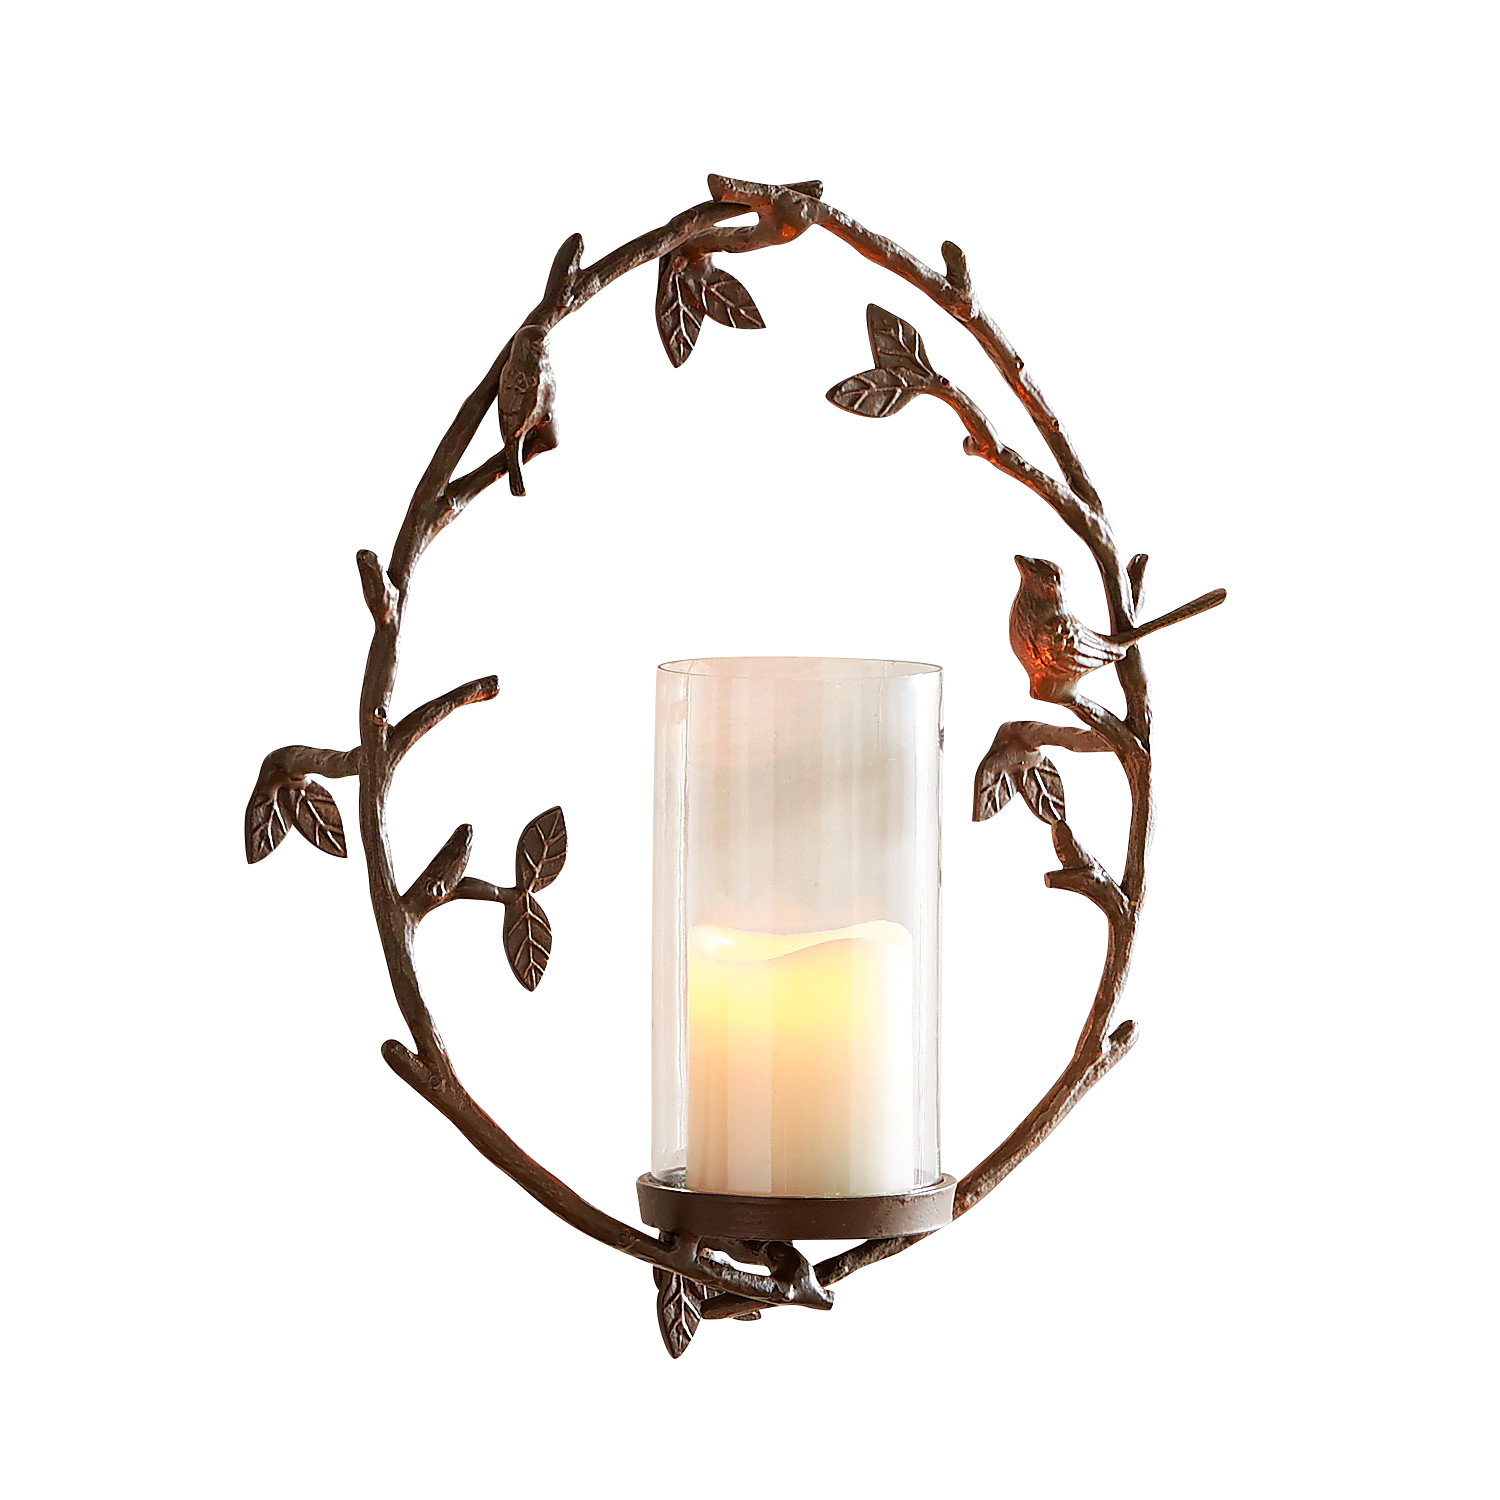 Bird on a Twig Candle Wall Sconce